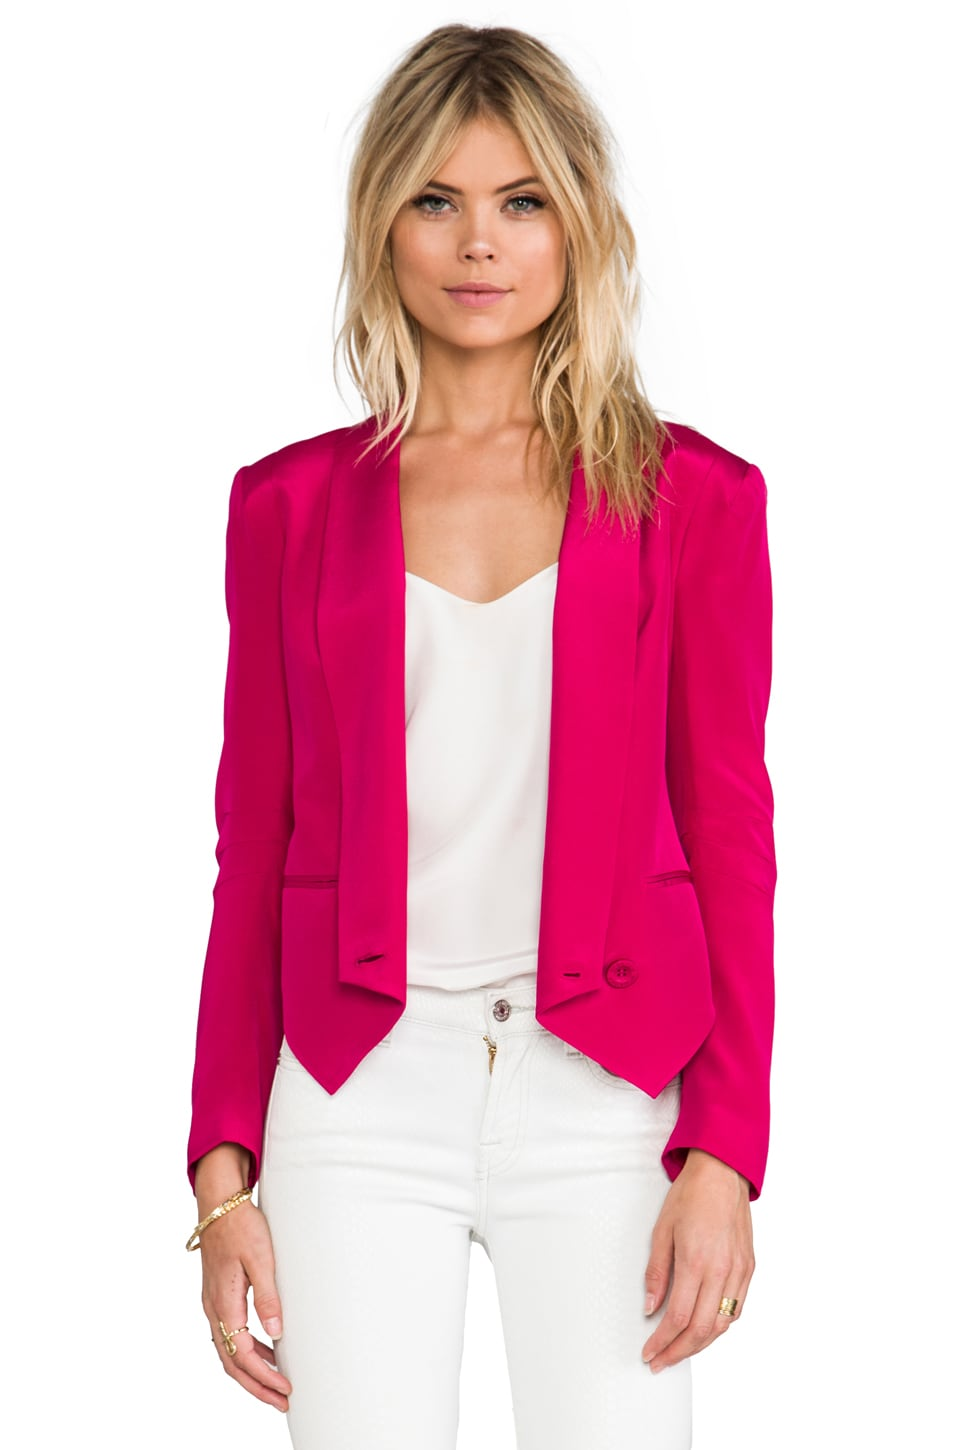 Rebecca Minkoff Becky Jacket in Cerise